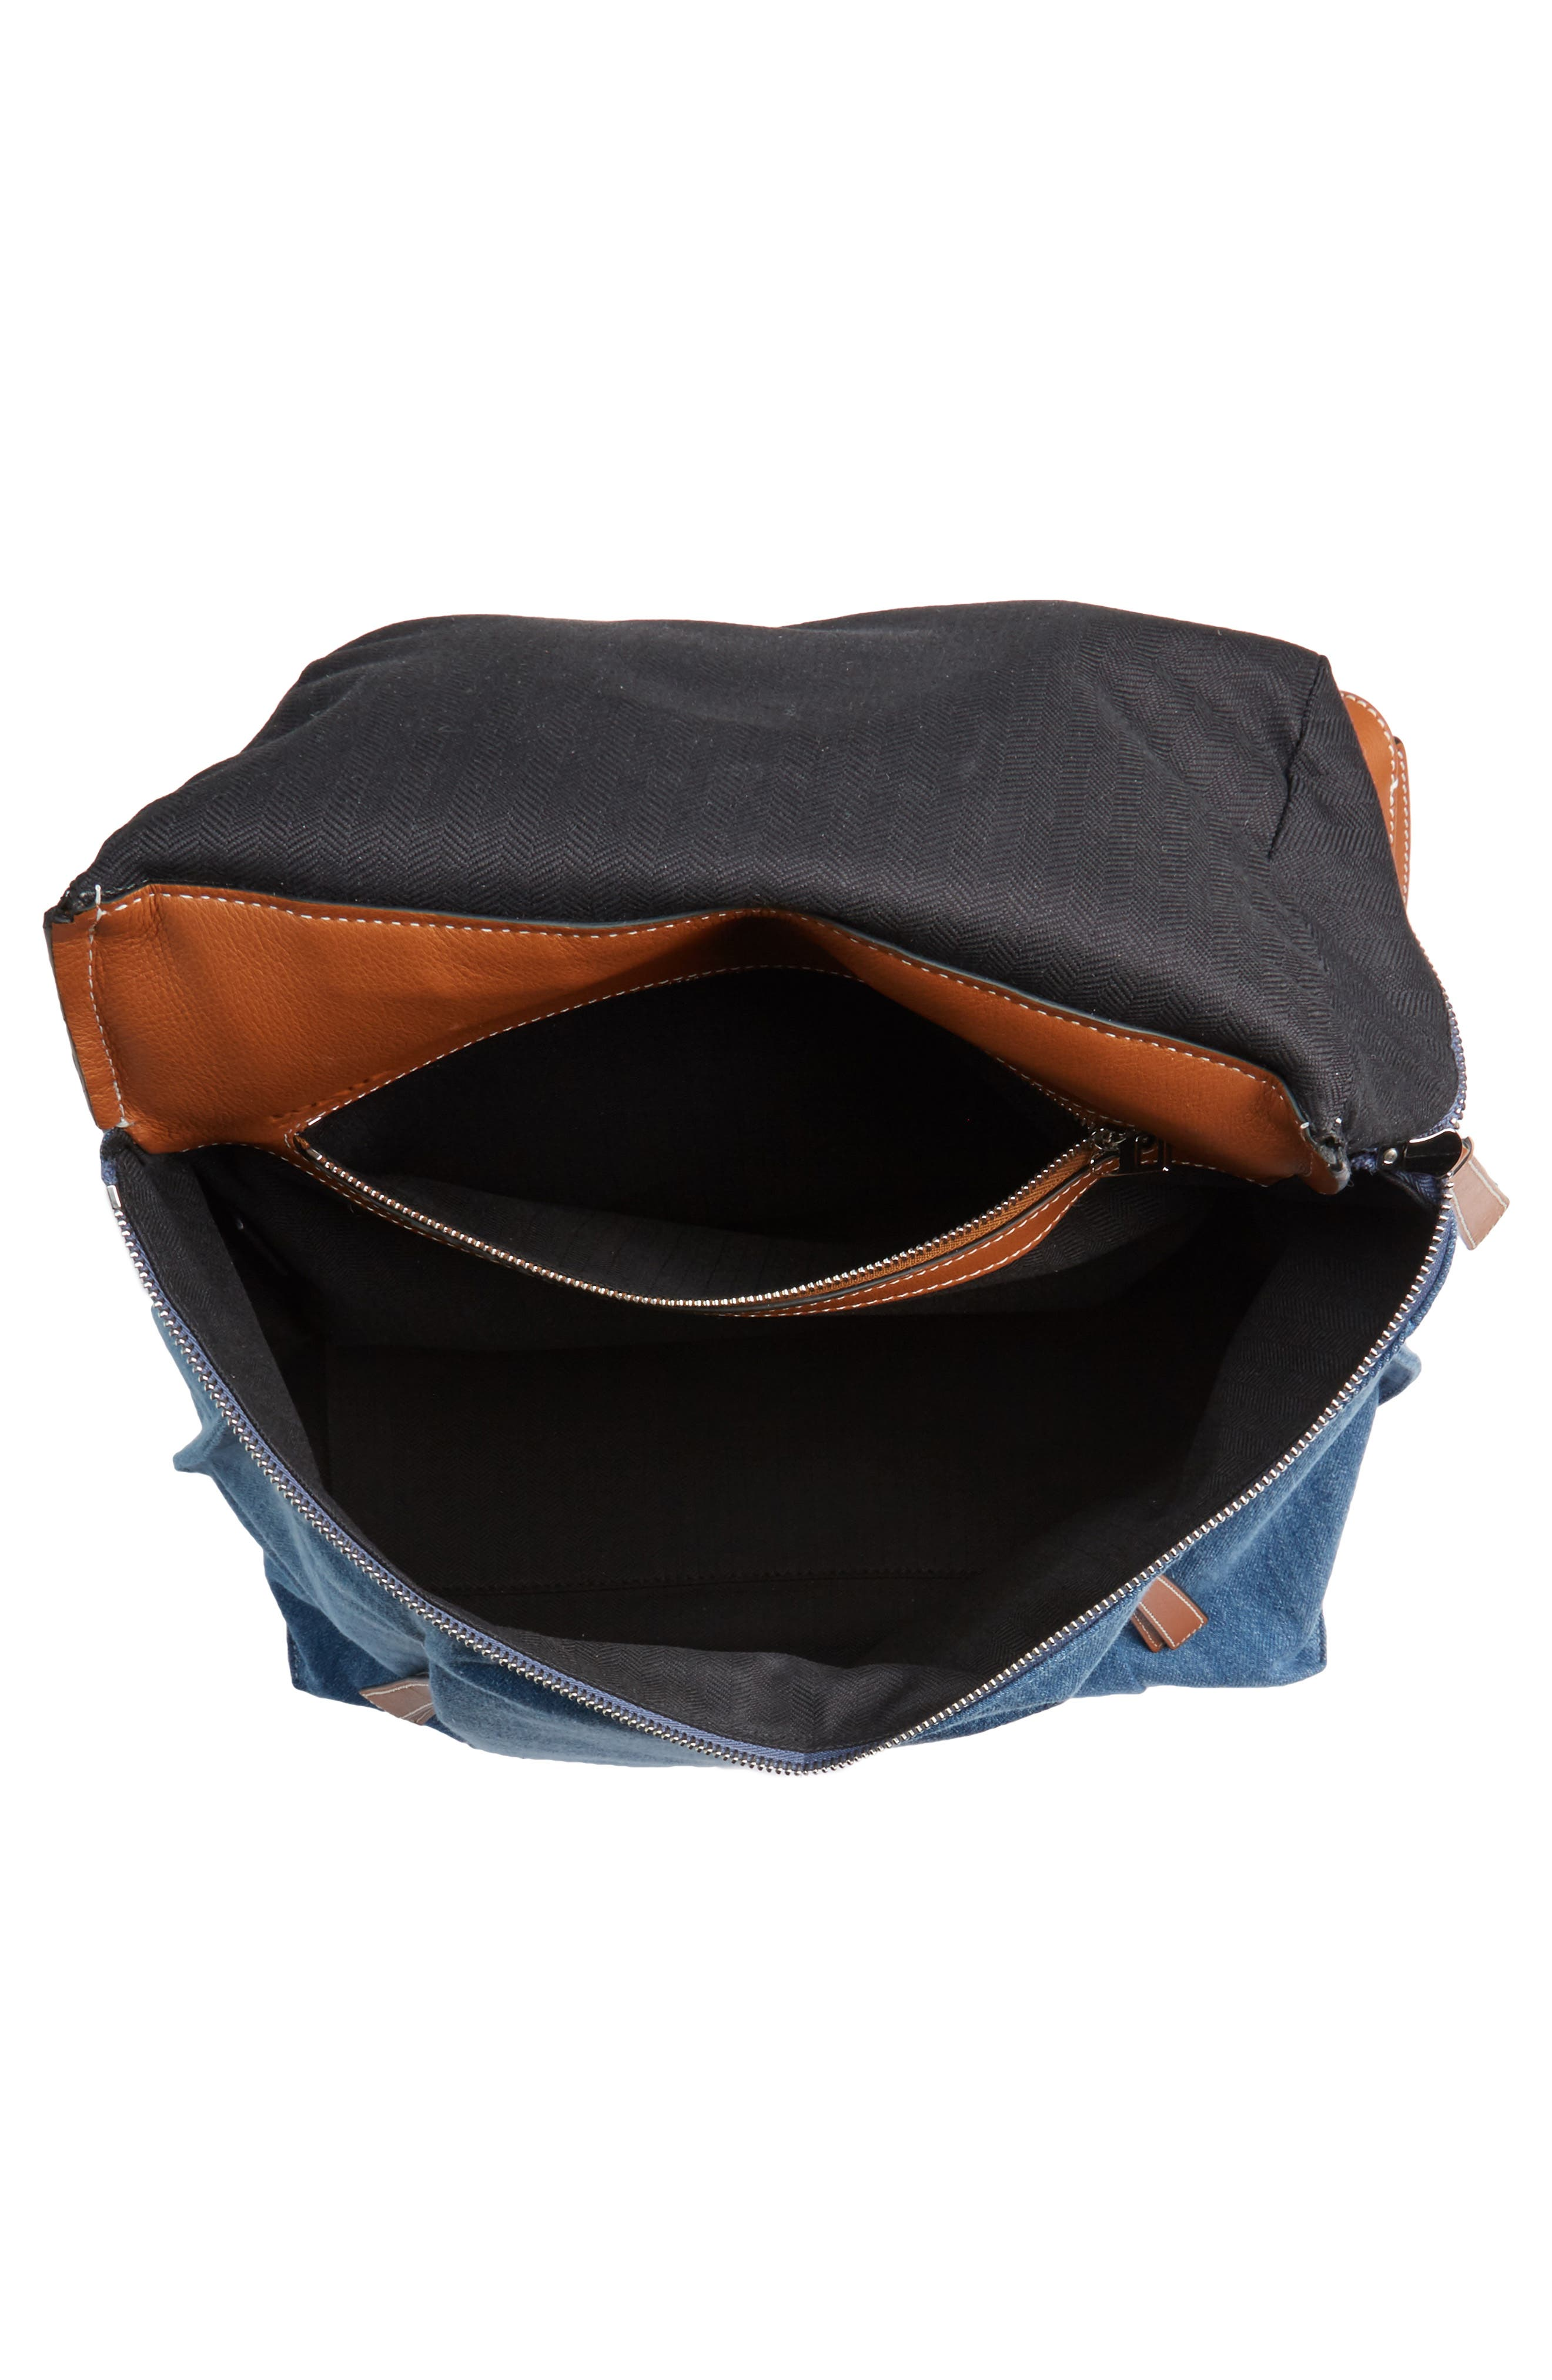 T Small Denim & Leather Backpack,                             Alternate thumbnail 5, color,                             476